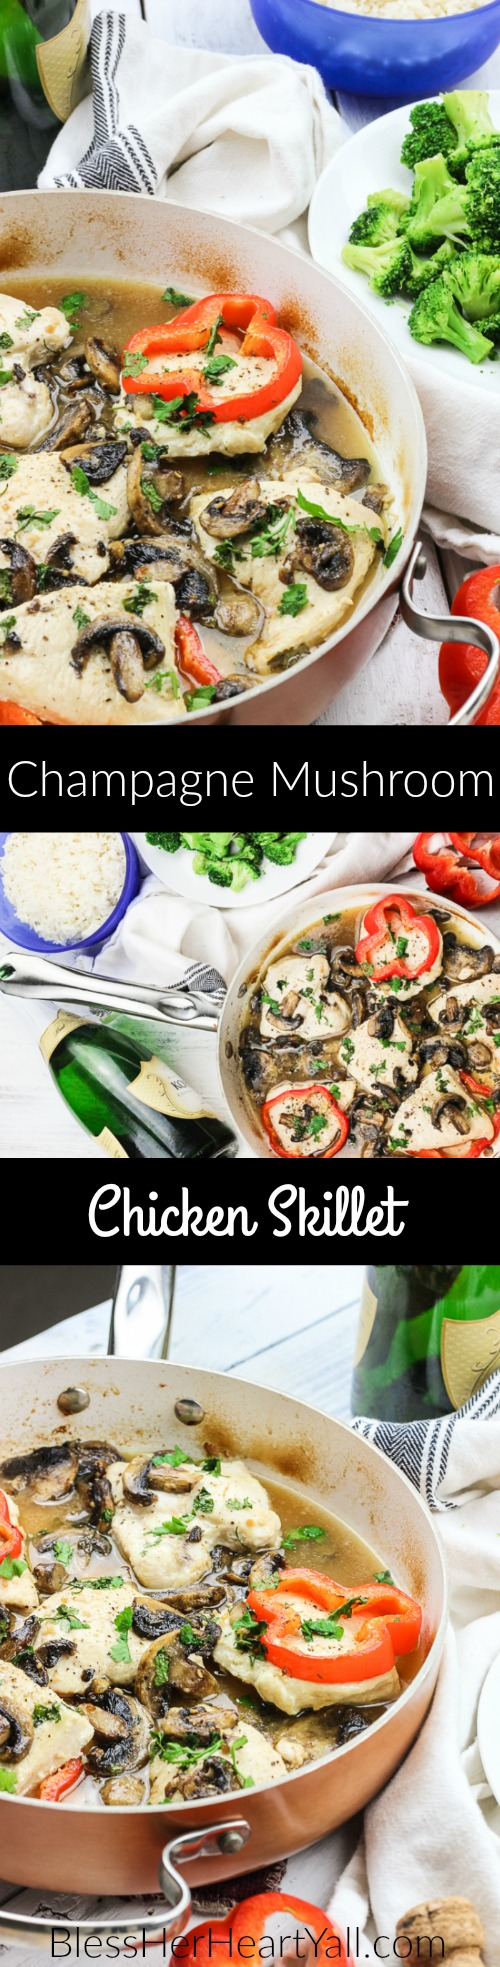 champagne mushroom chicken long pin 3